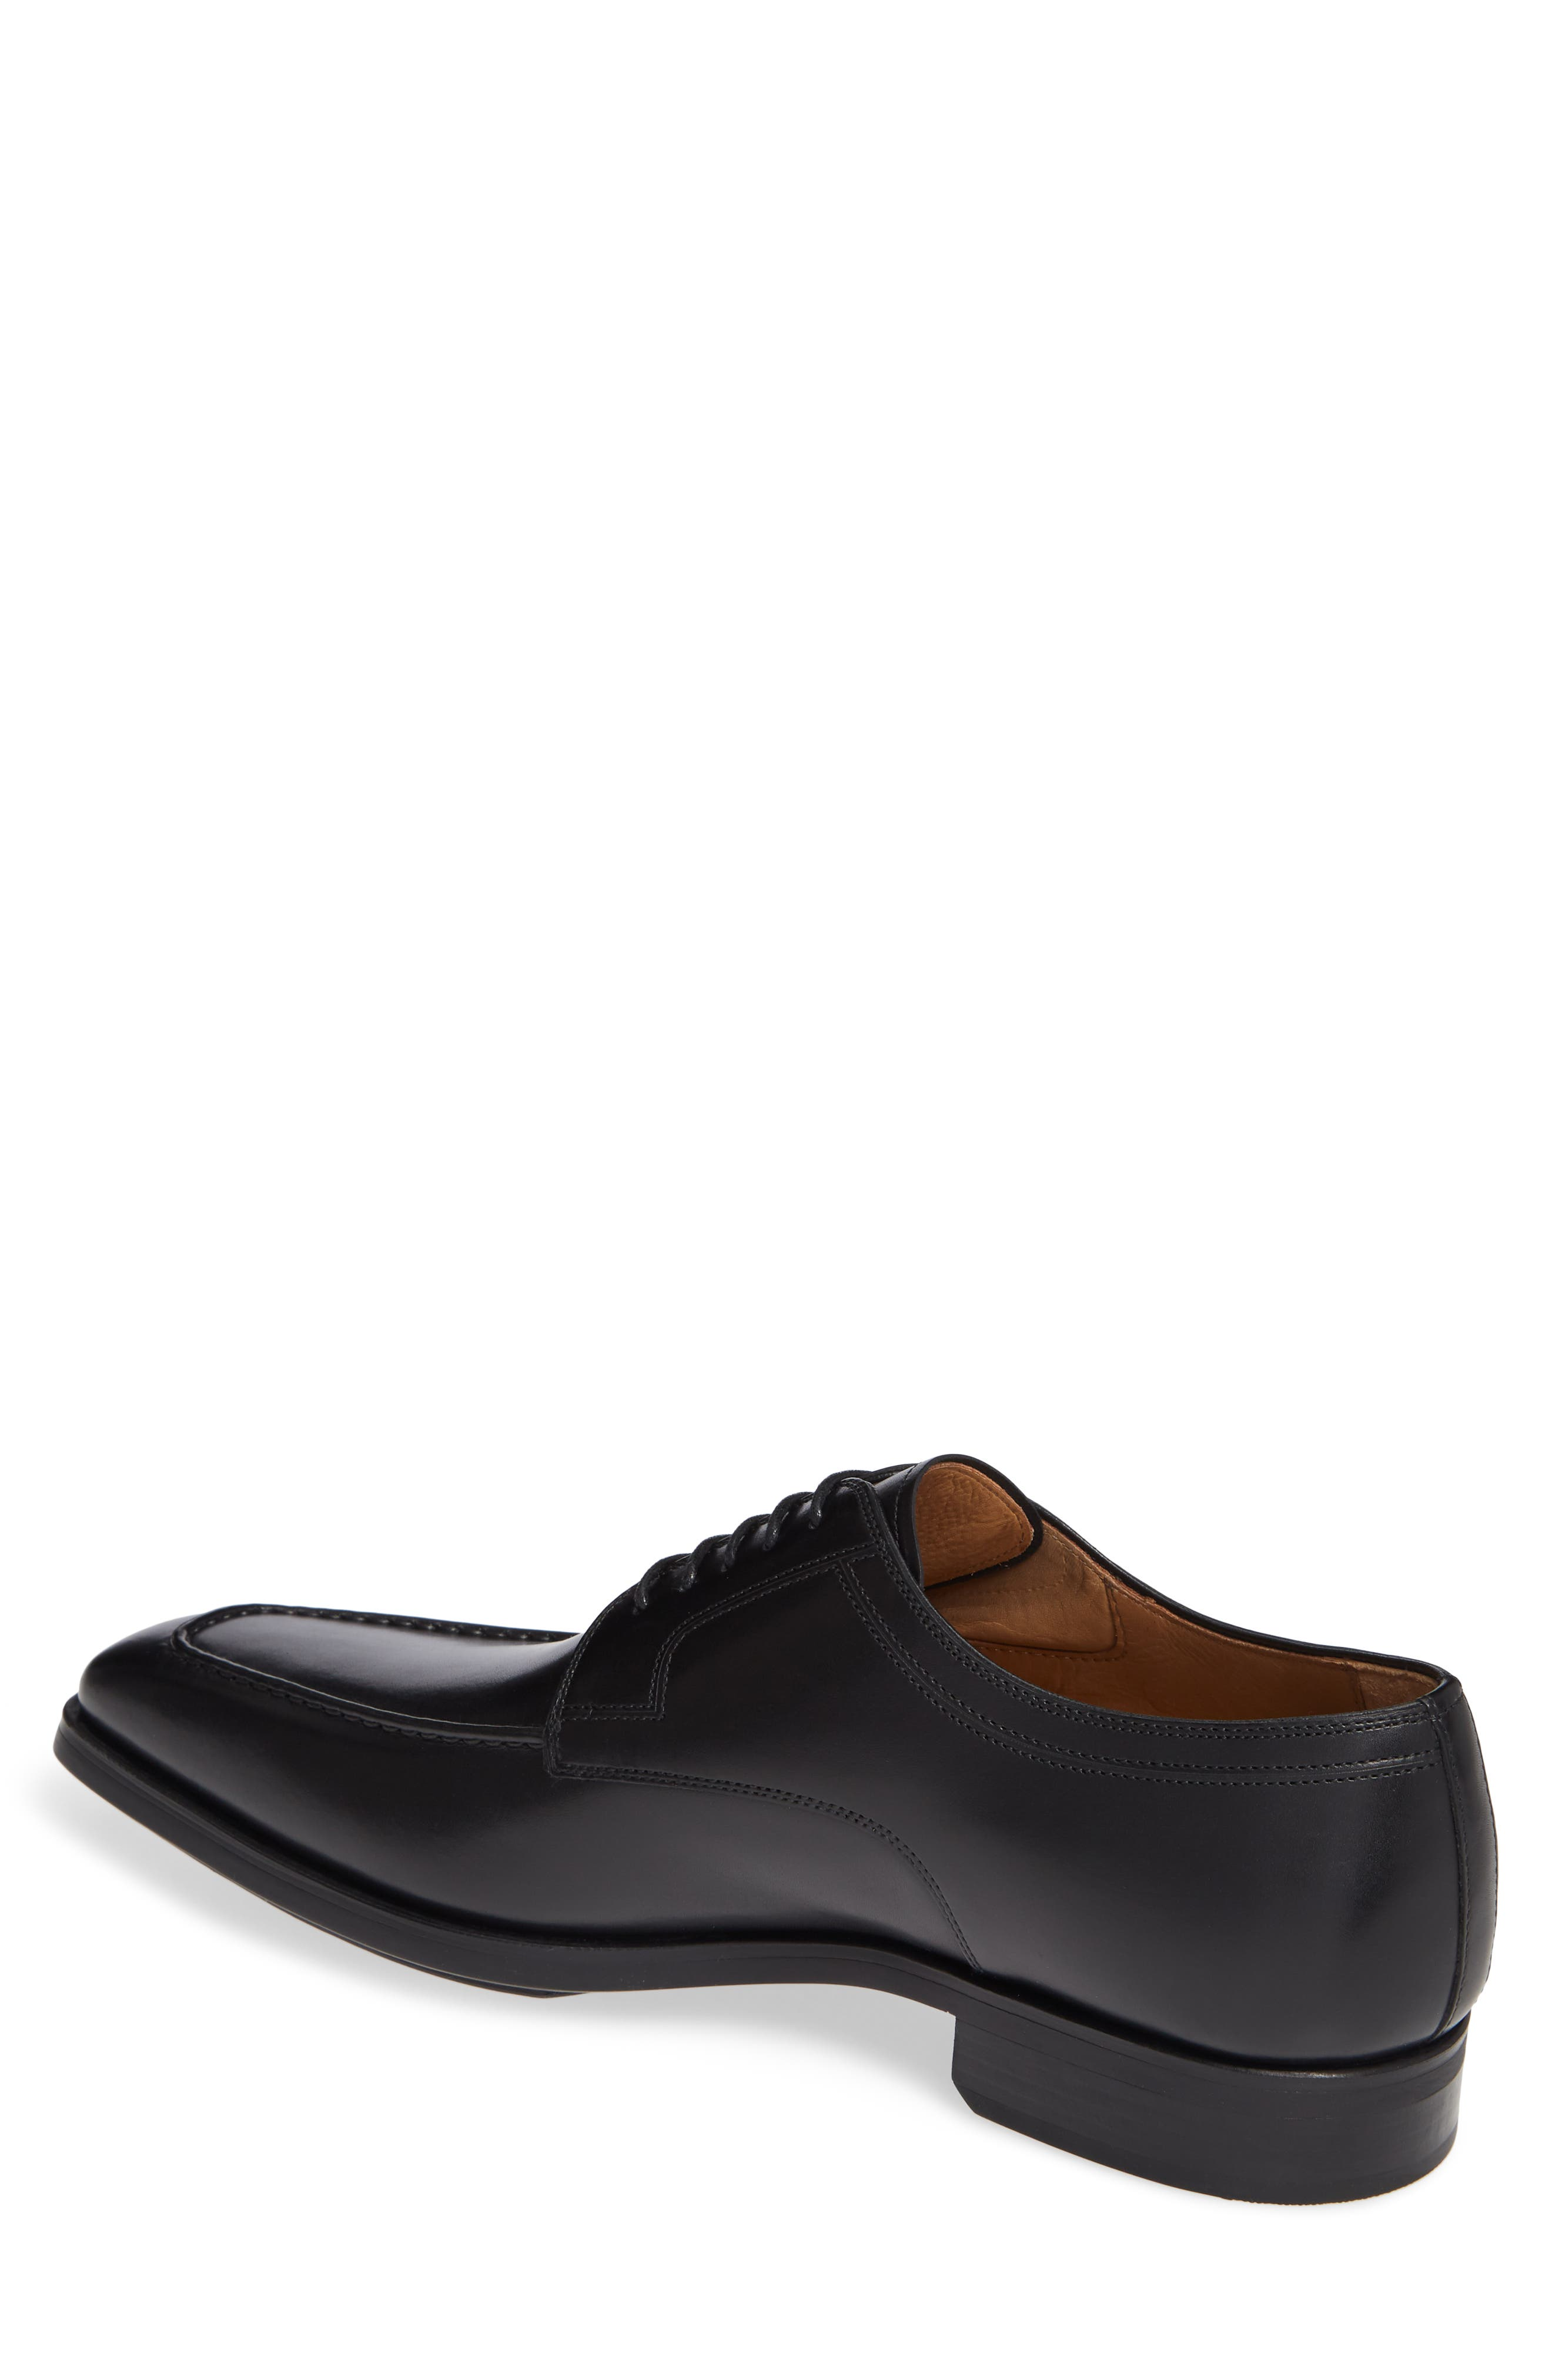 MAGNANNI,                             Diversa Romelo Apron Toe Derby,                             Alternate thumbnail 2, color,                             BLACK LEATHER